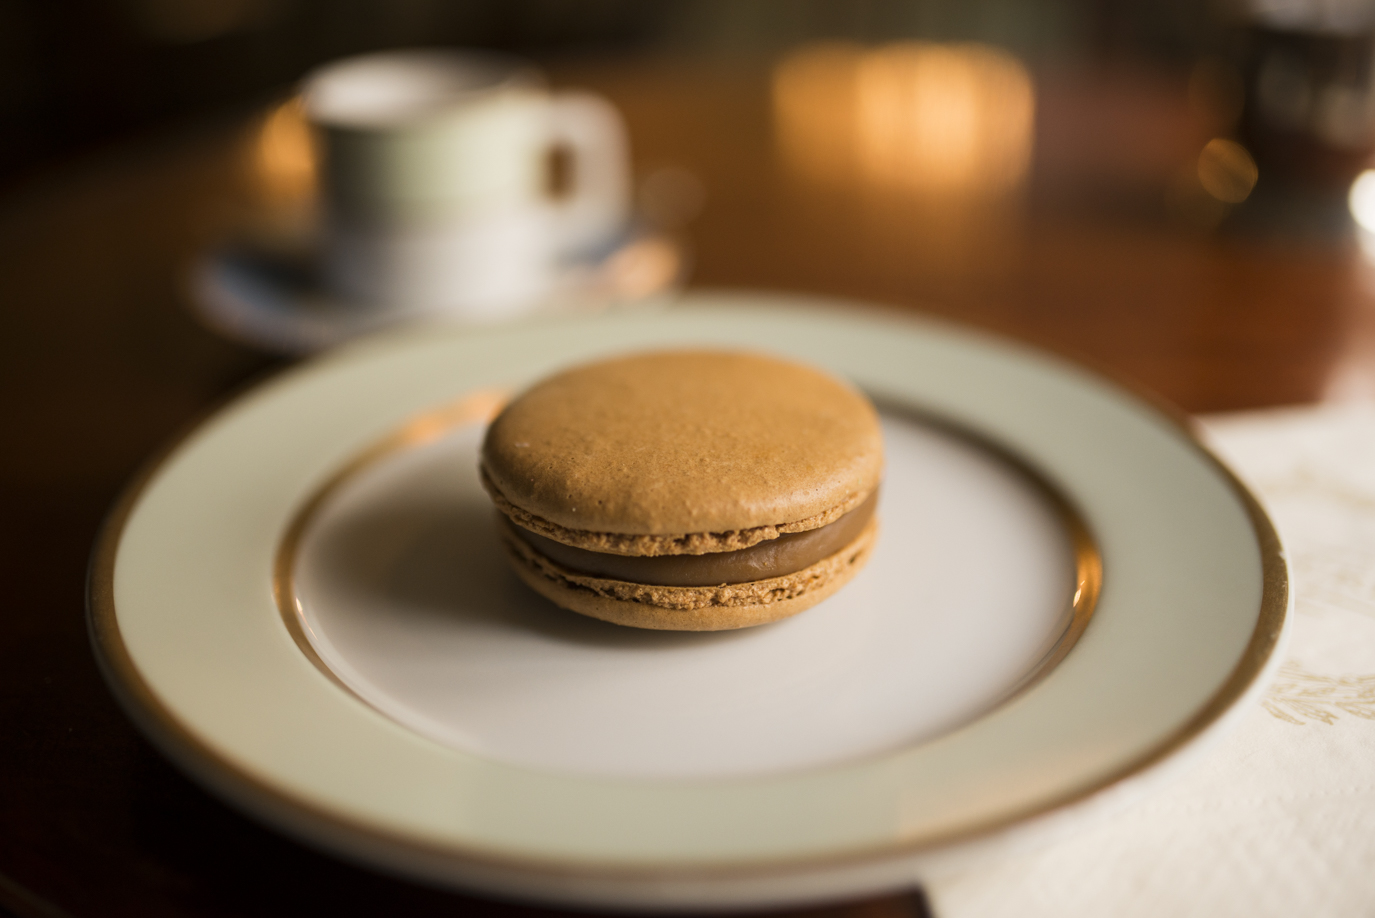 Caramel buerre salé (yes, that is a large macaron)